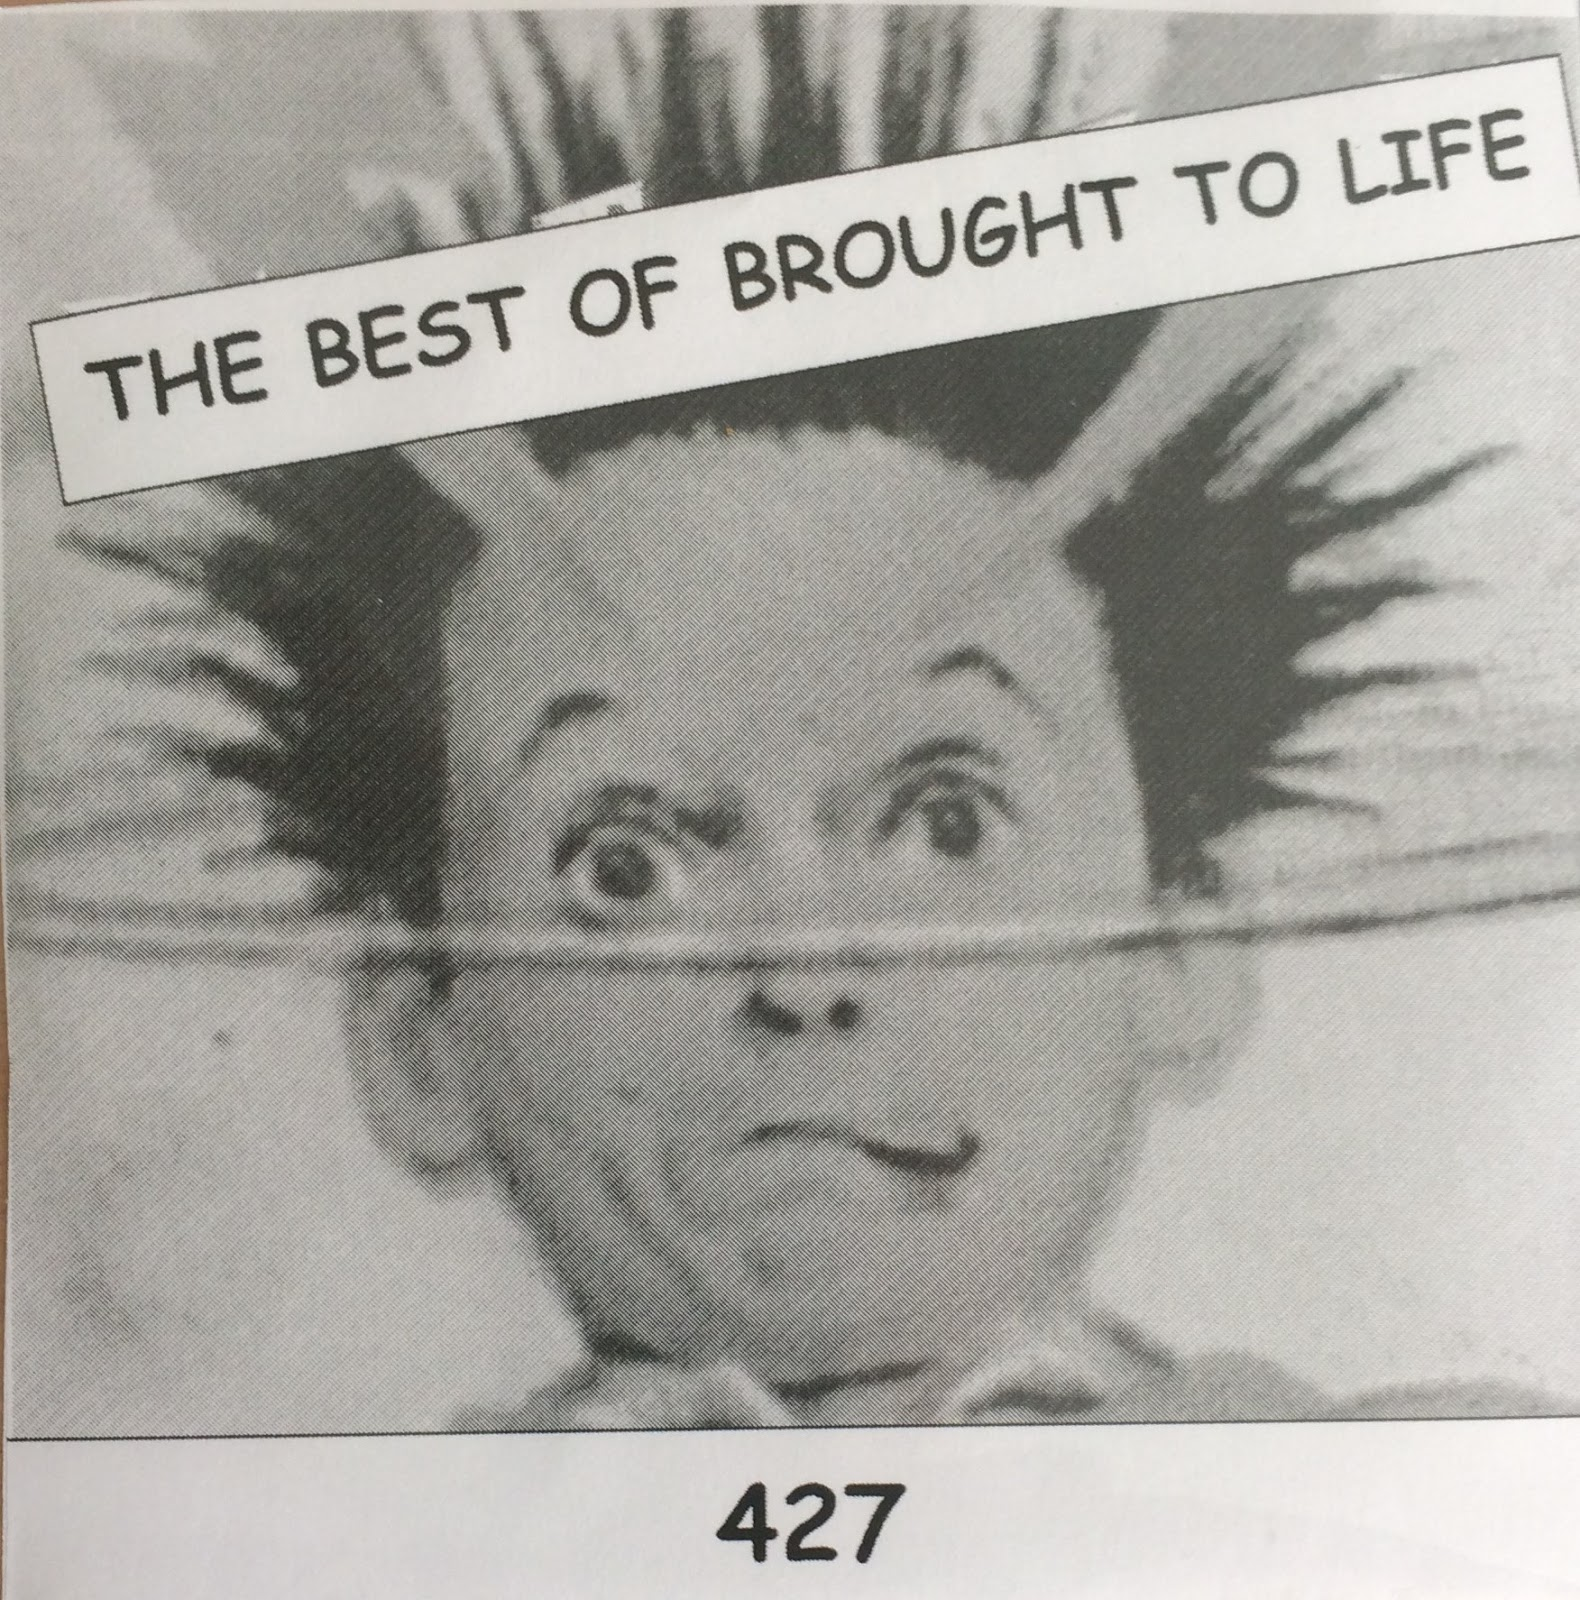 The Best of Brought To Life - 427